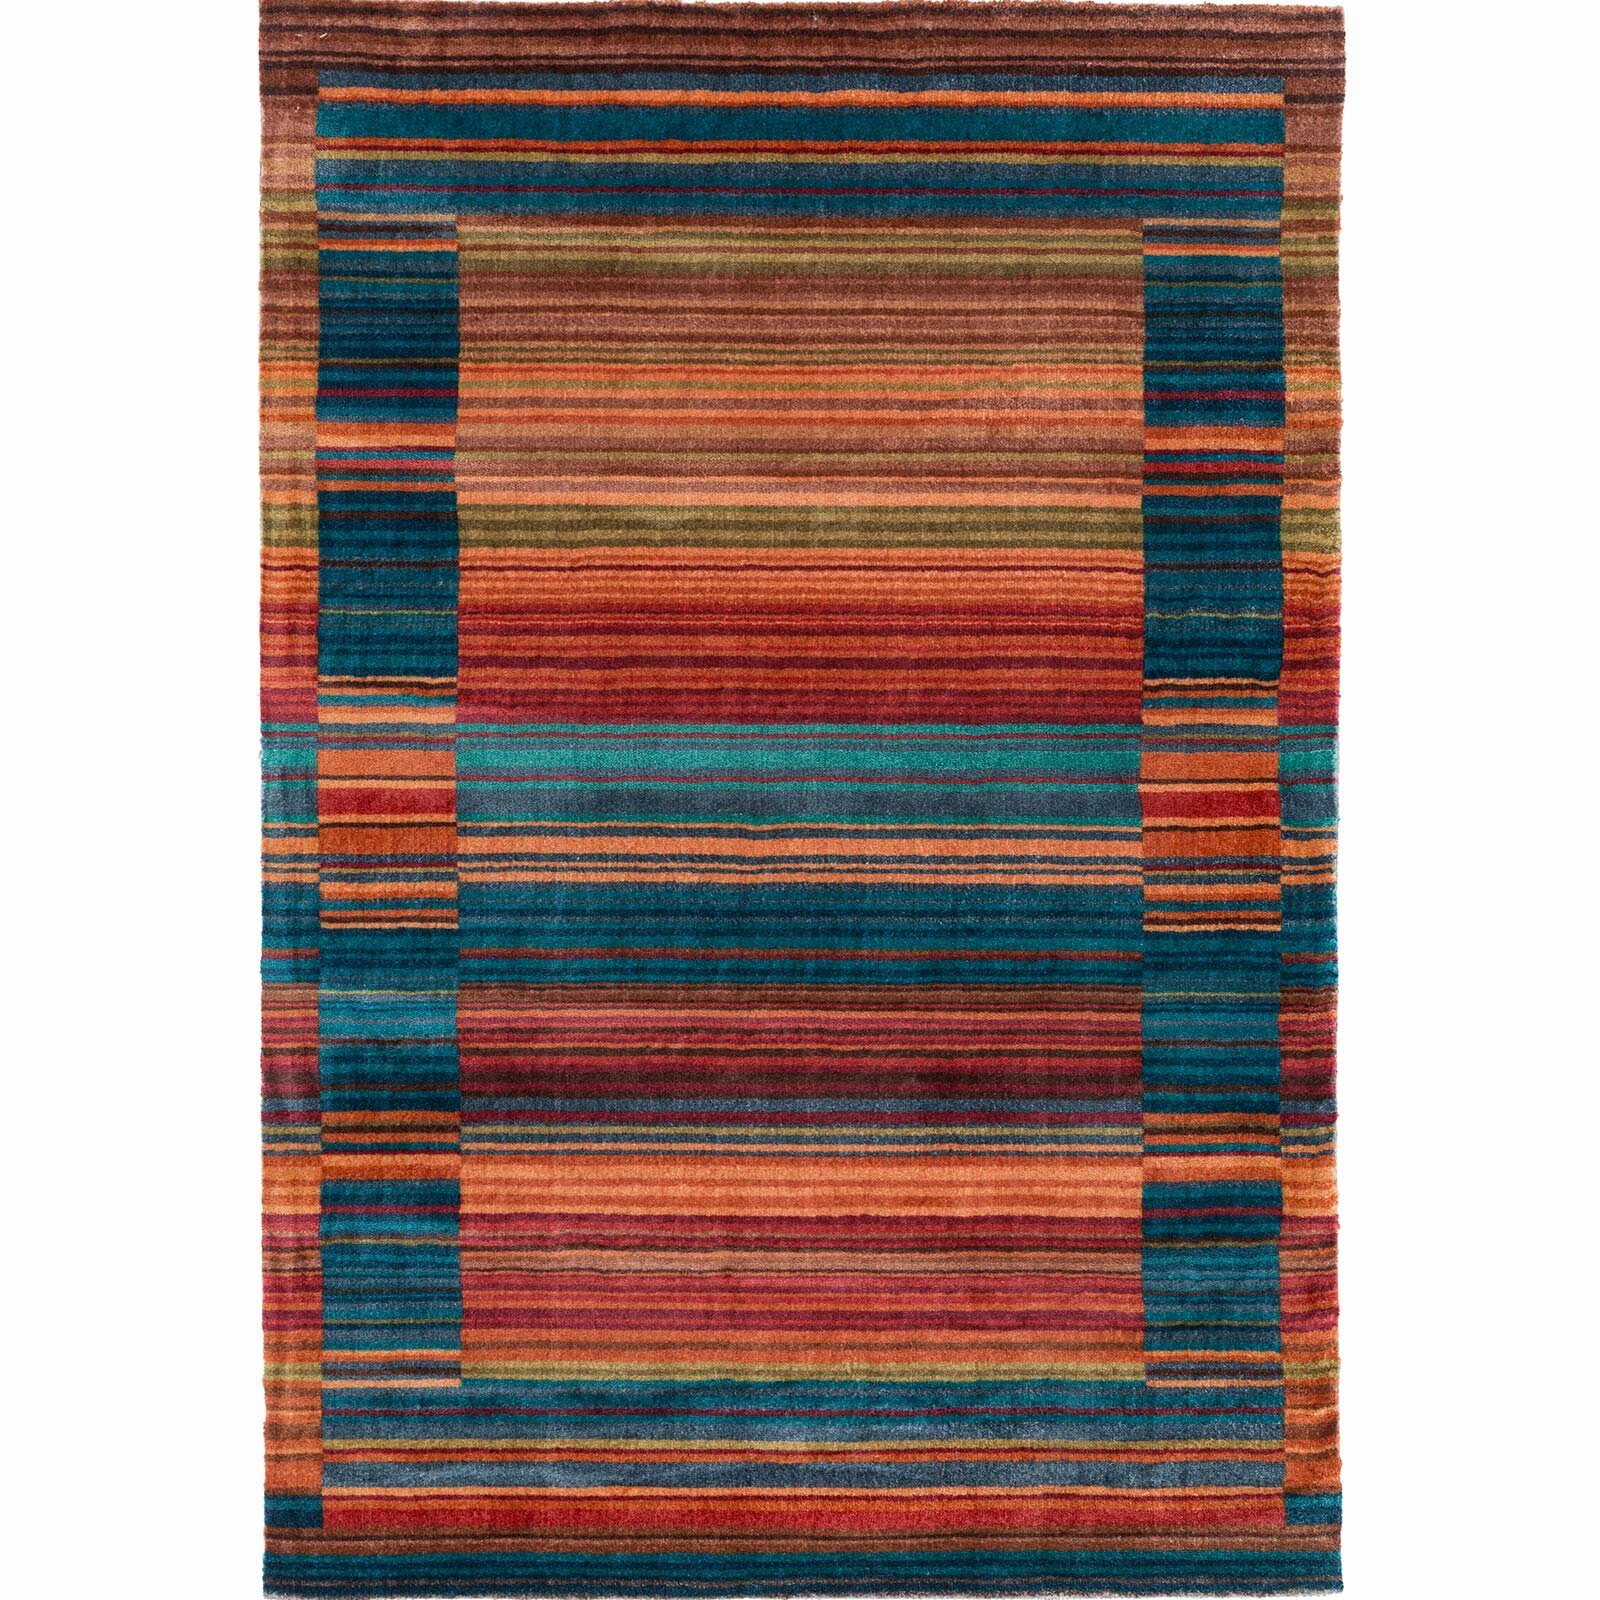 This Product Is A Vibrant Color Fl Print Area Rug